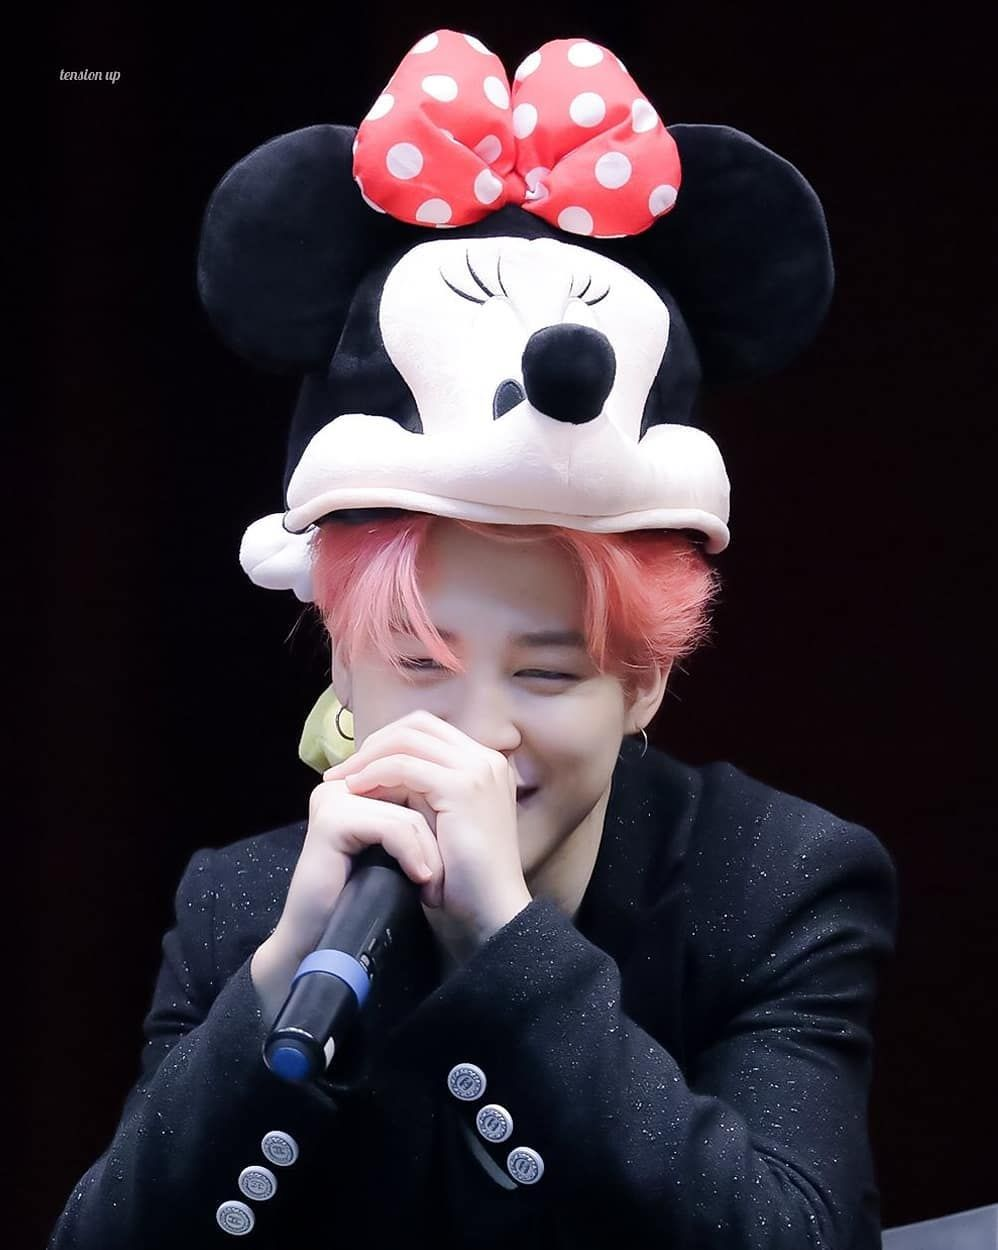 Jimin Cute Jimin Bts Jimin Bts Bts jimin wallpaper mickey mouse